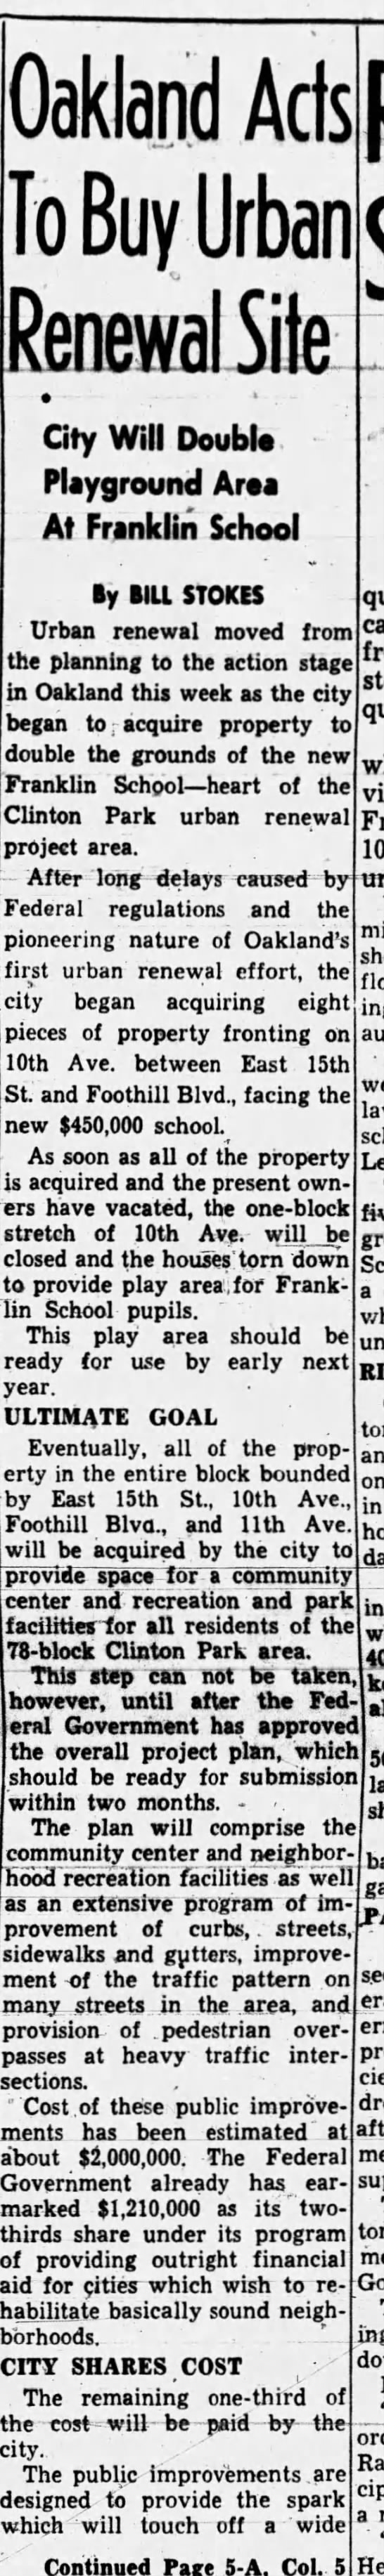 Oakland Acts to Buy Urban Renewal Site Pt 1 - Oakland Tribune September 2, 1956 -